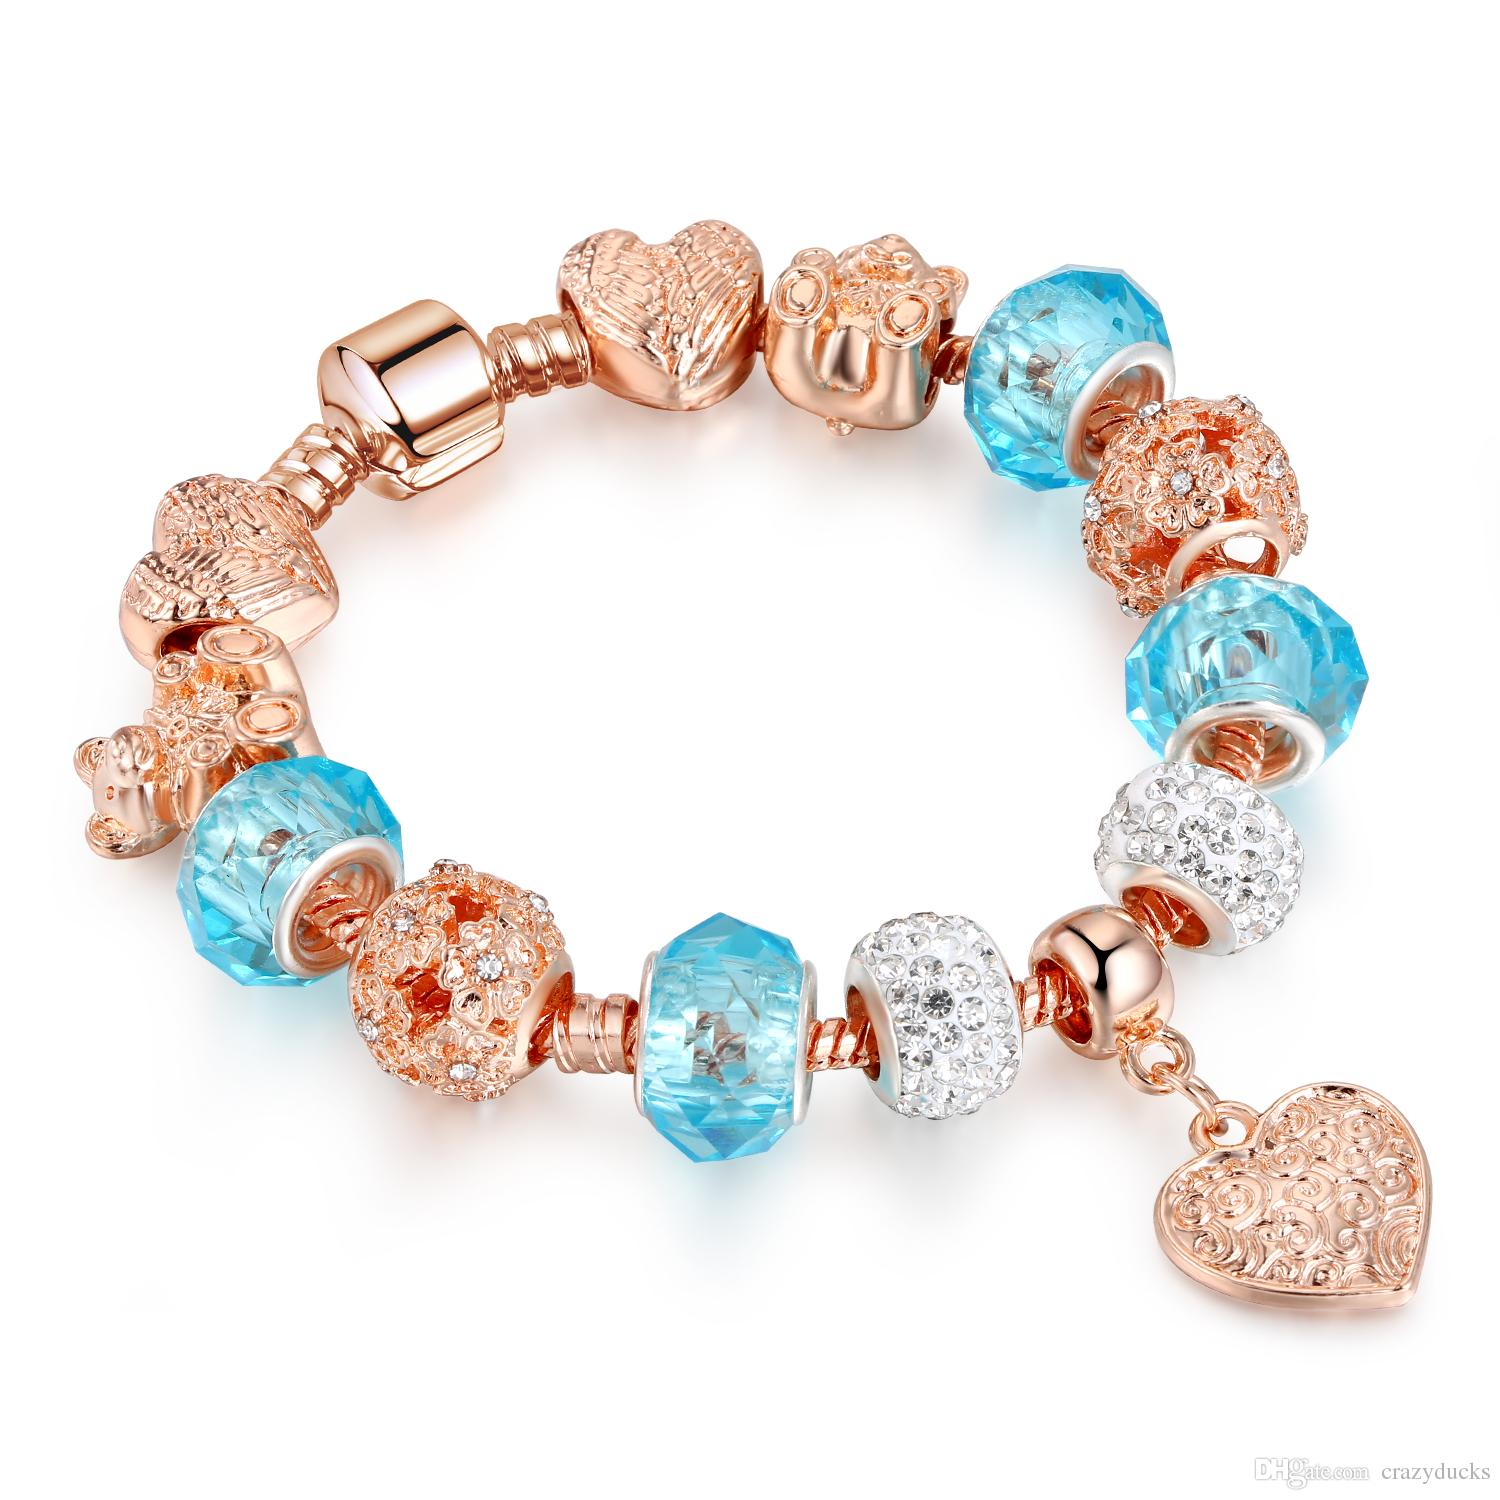 Crazyducks New European Charm Bracelet With Heart Pendant For Women Diy Crystal Bear Bracelets Pulseira Jewelry Gift Aa164 Wholesale Charms 9ct Gold Charm